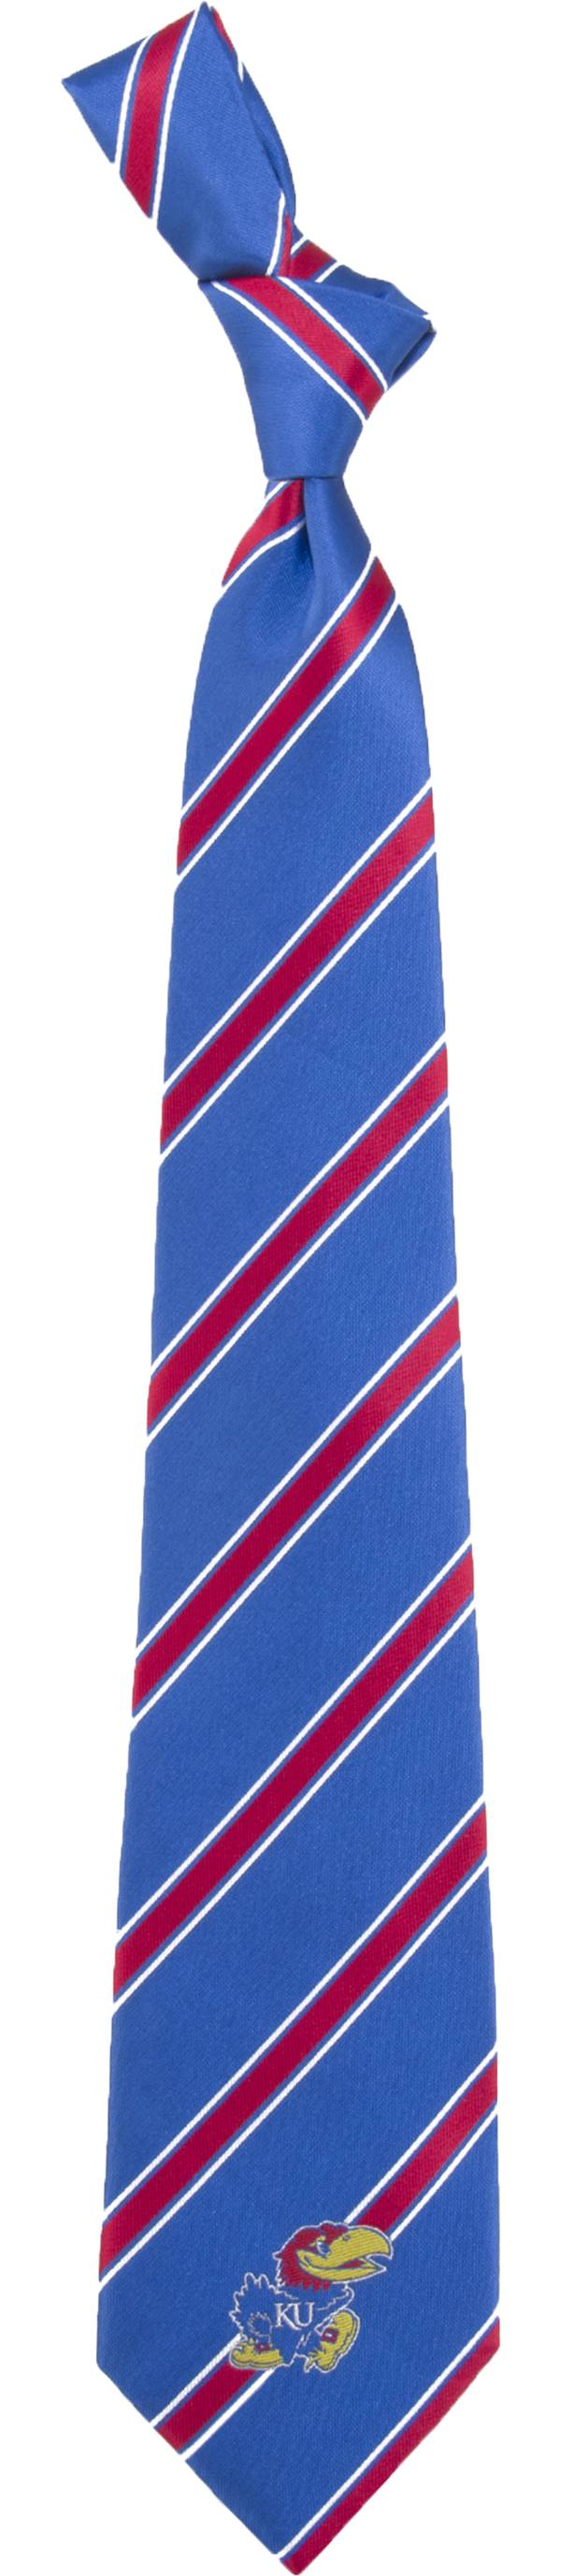 Eagles Wings Kansas Jayhawks Woven Poly 1 Necktie product image